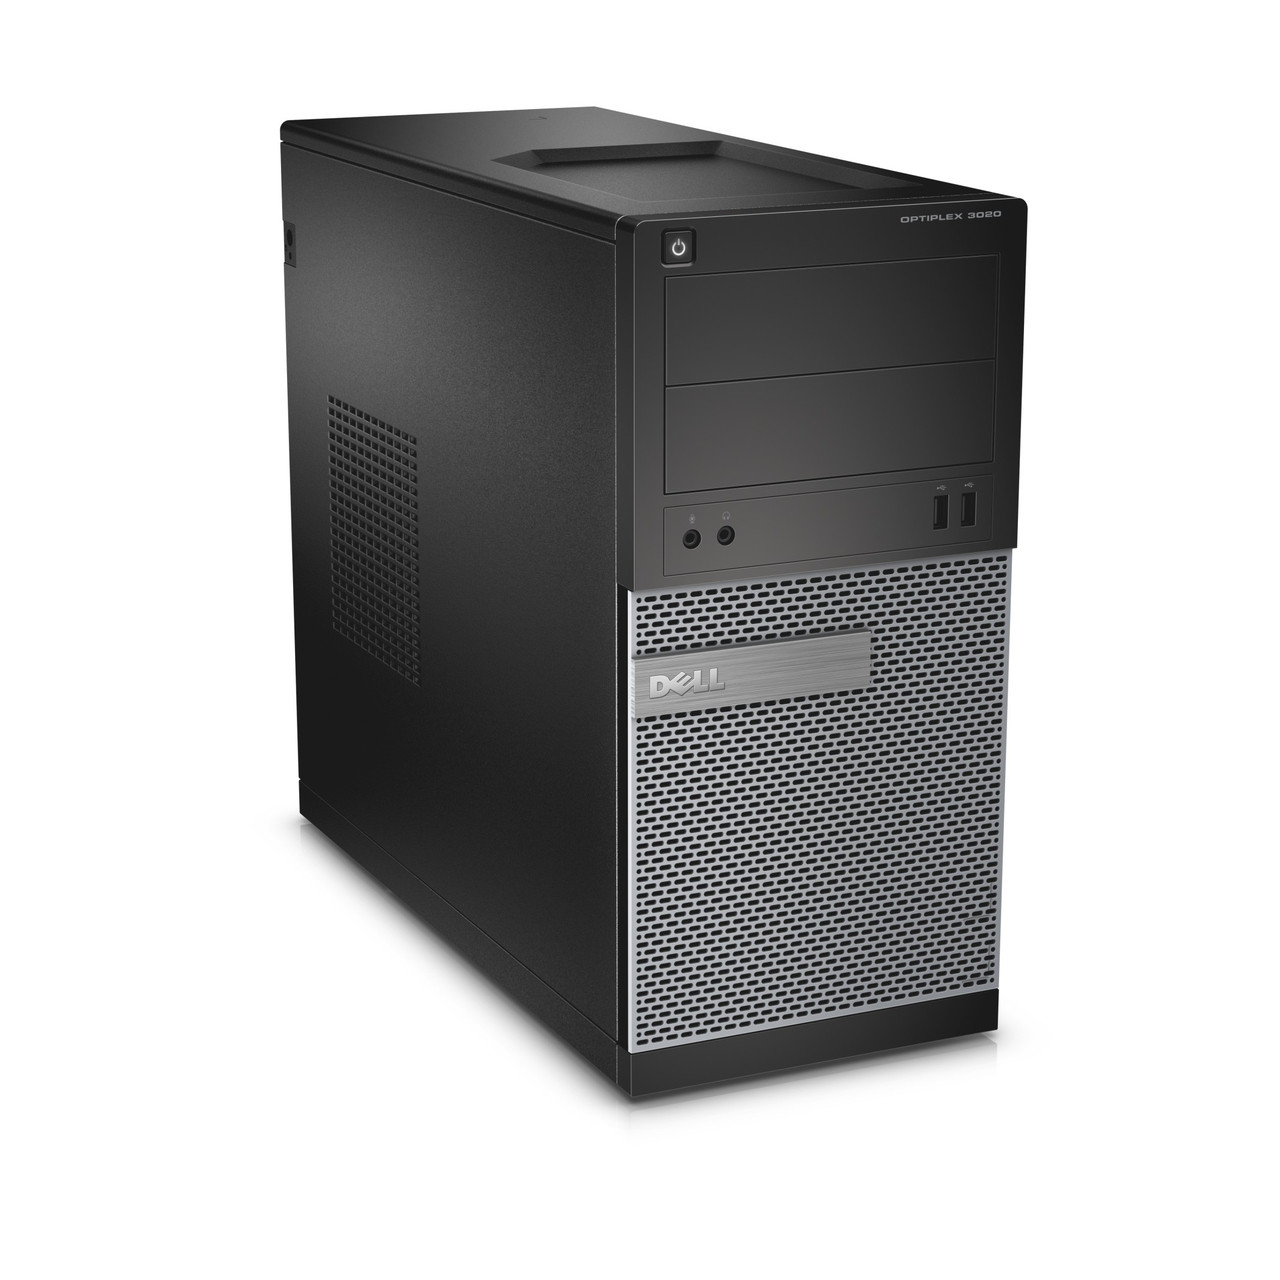 Dell Optiplex 3020 Minitower - Front View 3